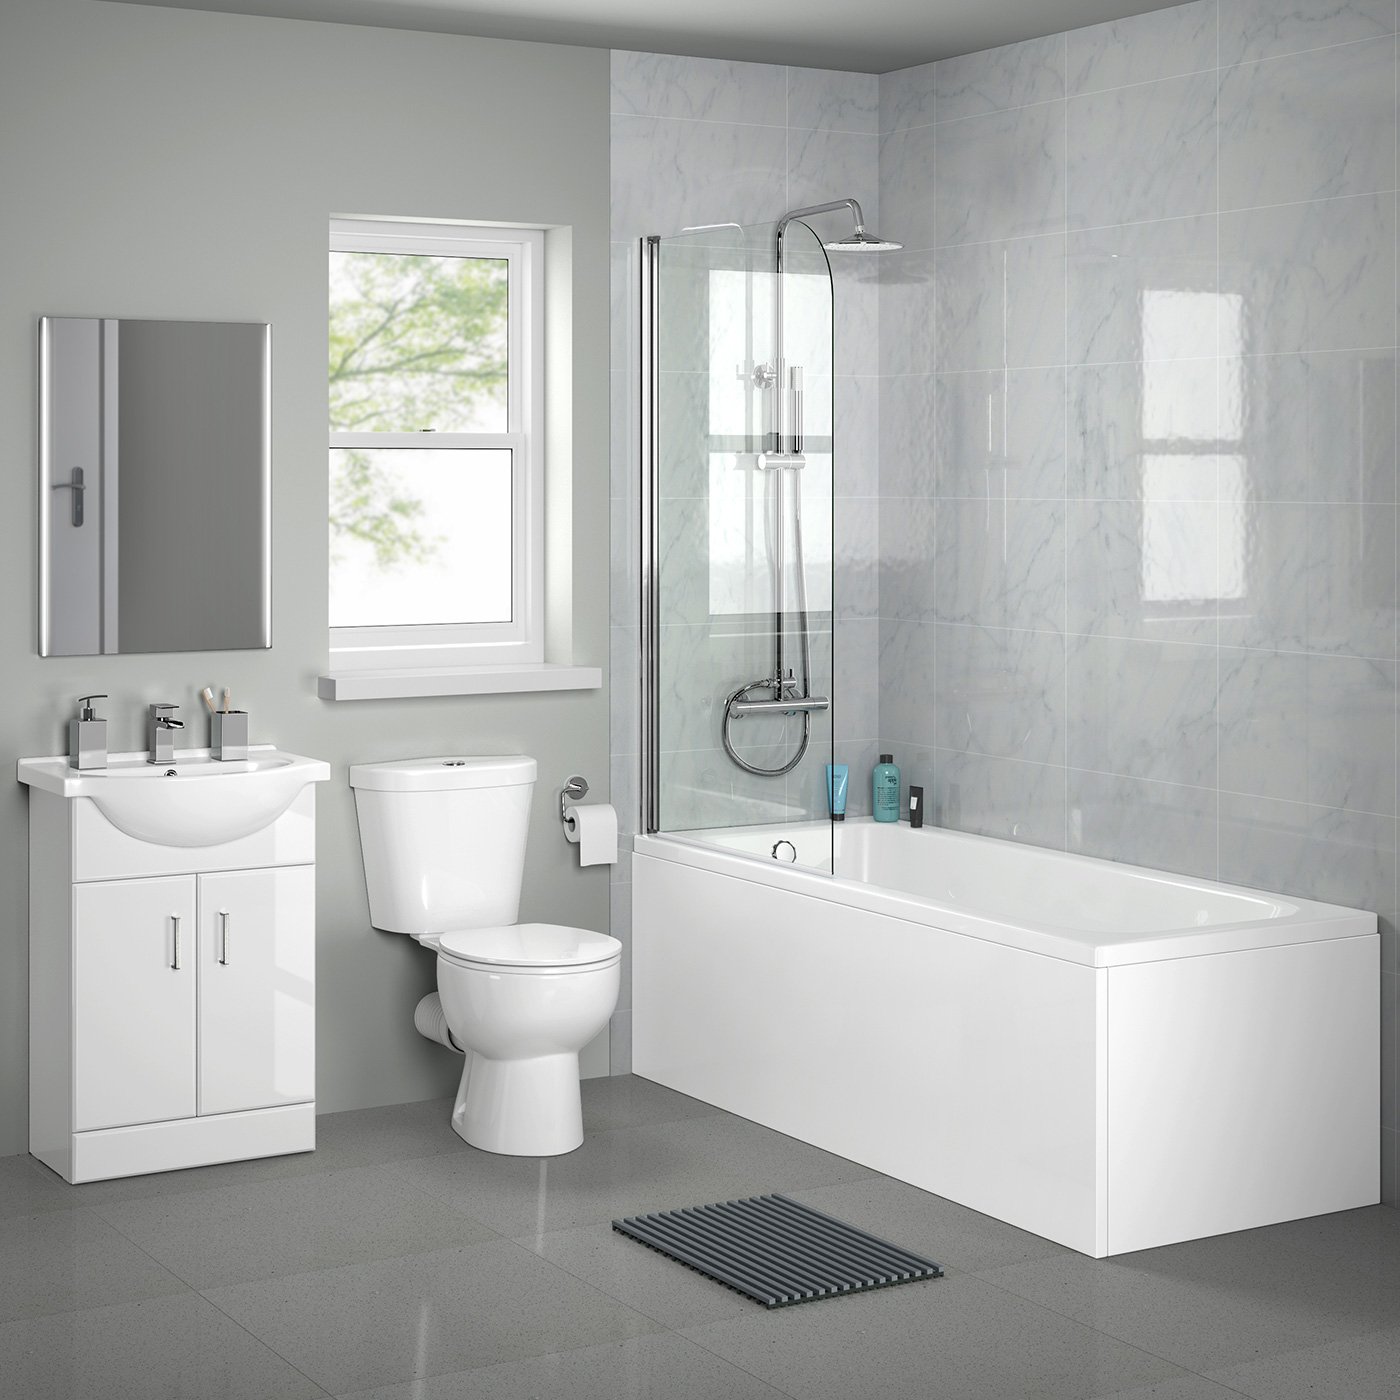 Bathroom showrooms shrewsbury - Bathroomsuites3